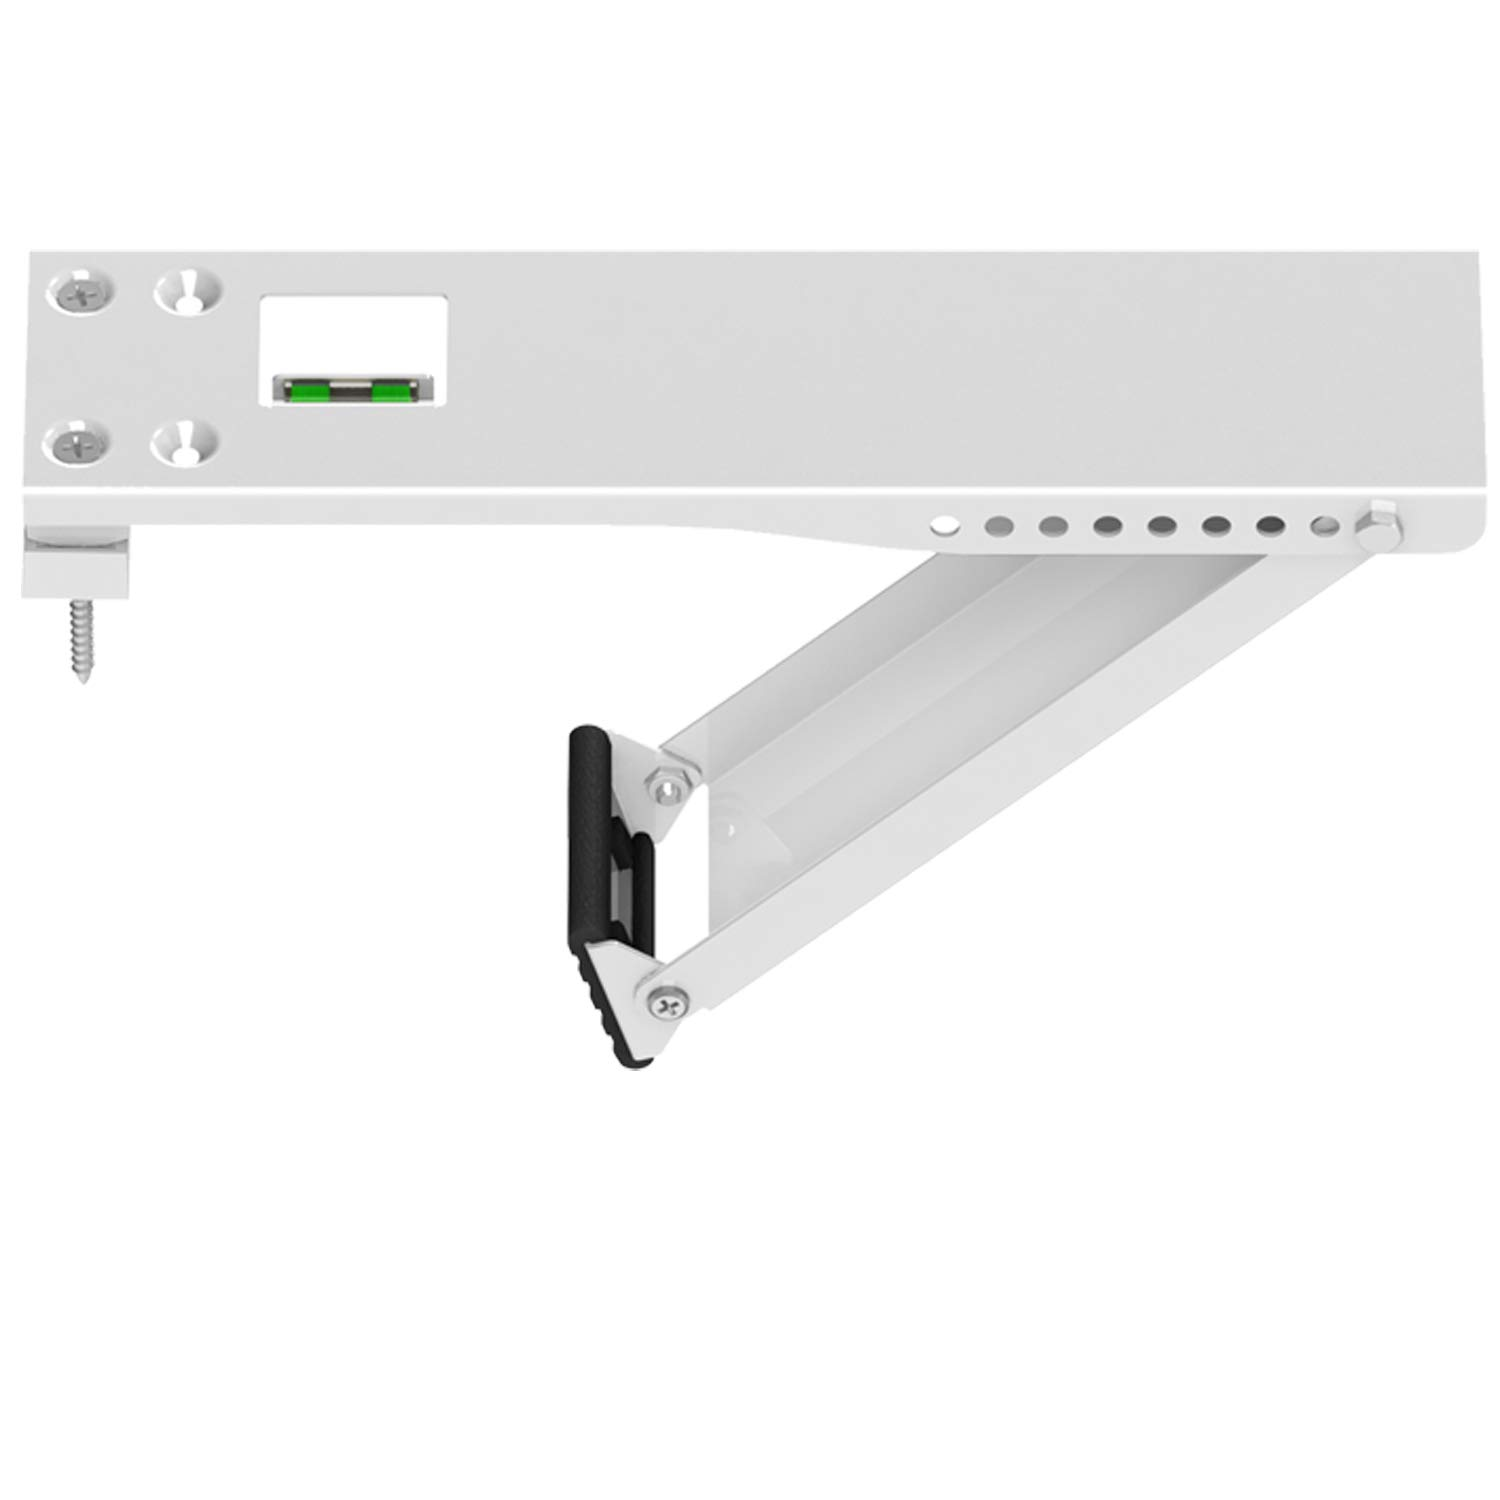 Jeacent Universal AC Window Air Conditioner Support Bracket Light Duty, Up to 85 lbs by Jeacent (Image #1)